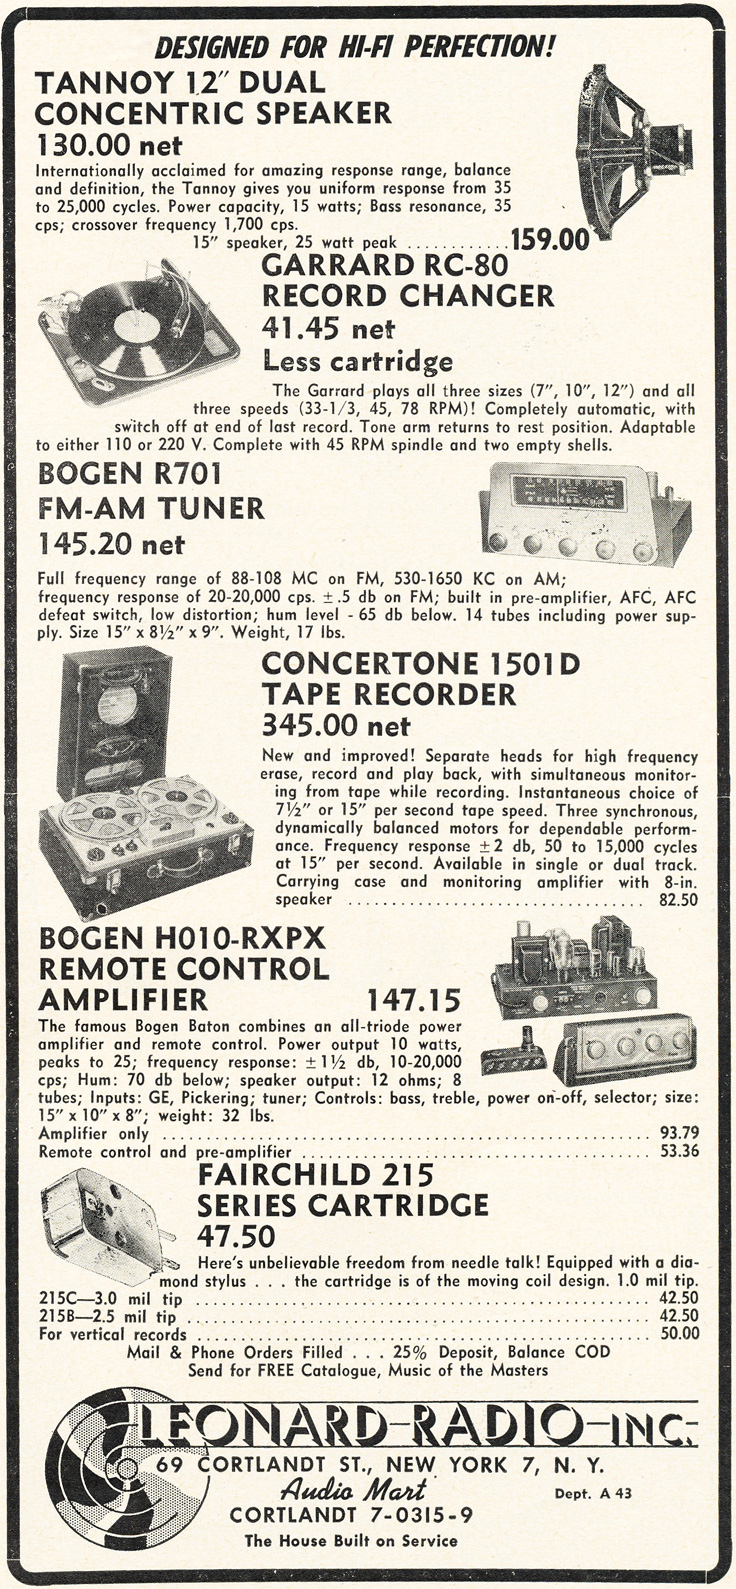 1953 Leonard Electronics ad that includes the Berlant Concertone 1501D professional reel to reel tape recorder in Reel2ReelTexas.com's vintage recording collection